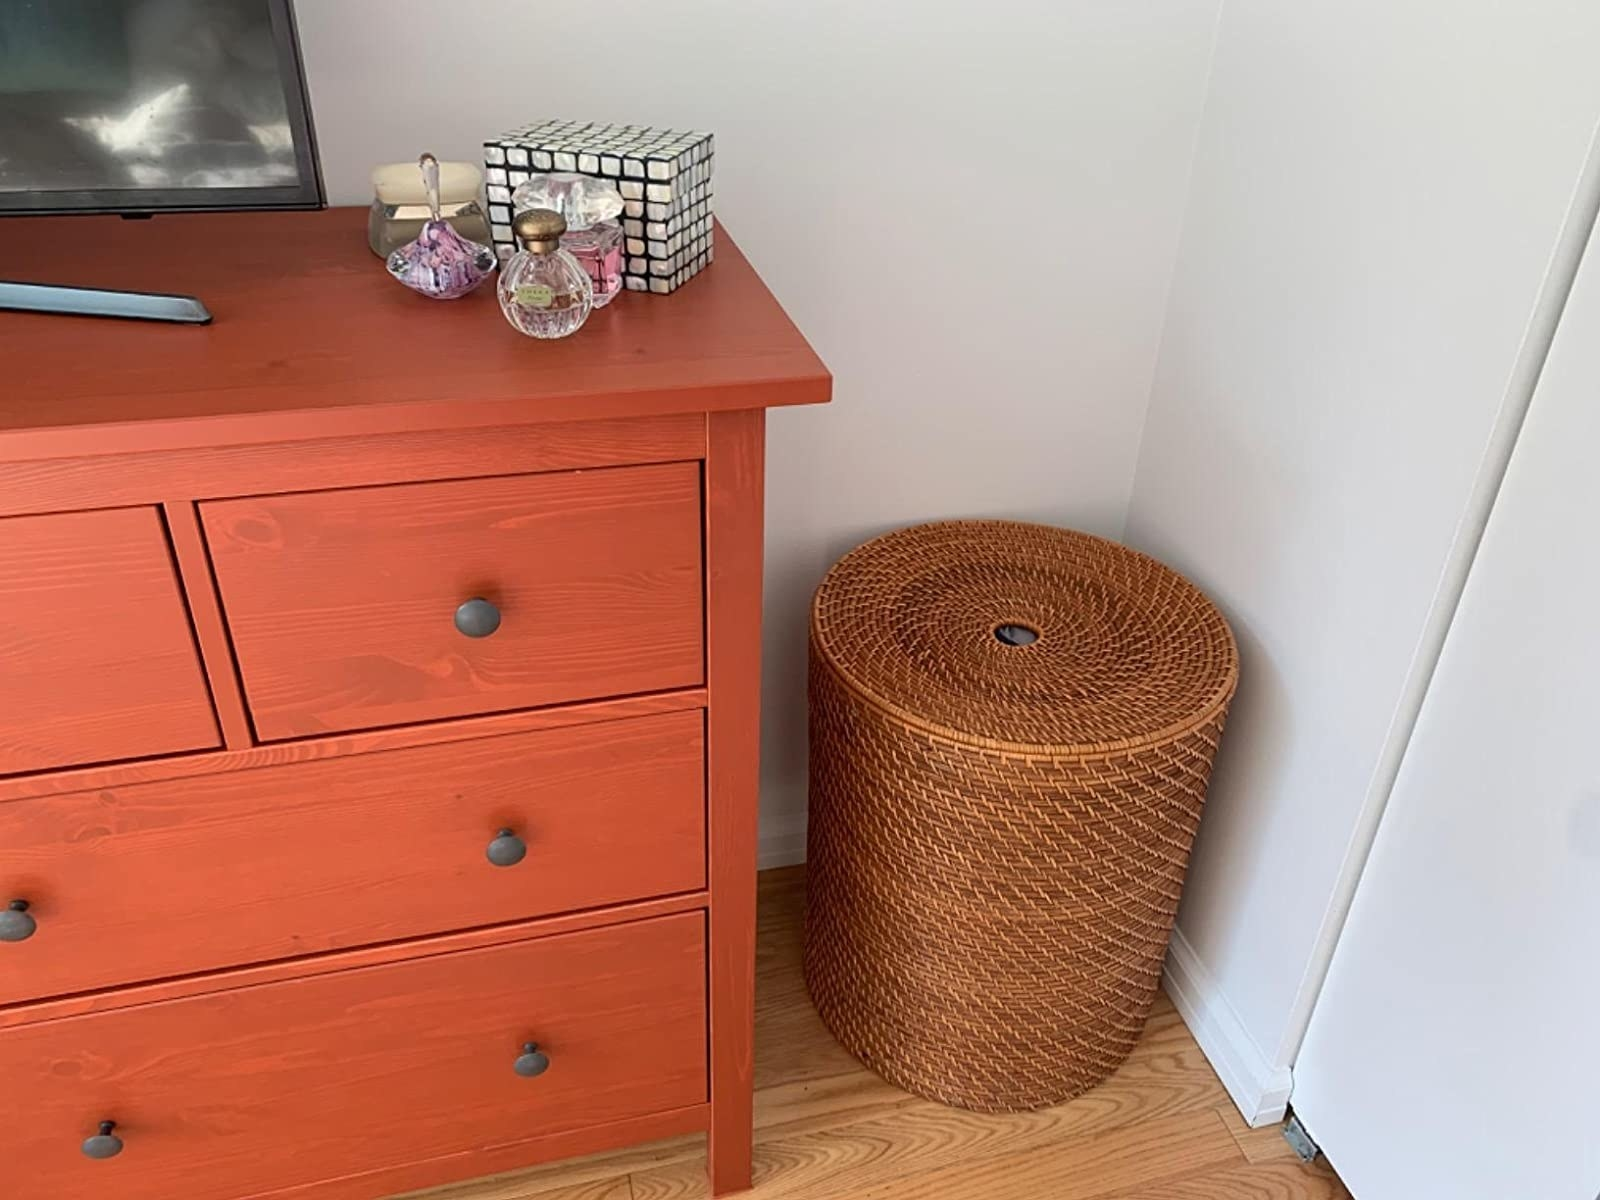 A reviewer's photo of the rattan hamper which has a lid